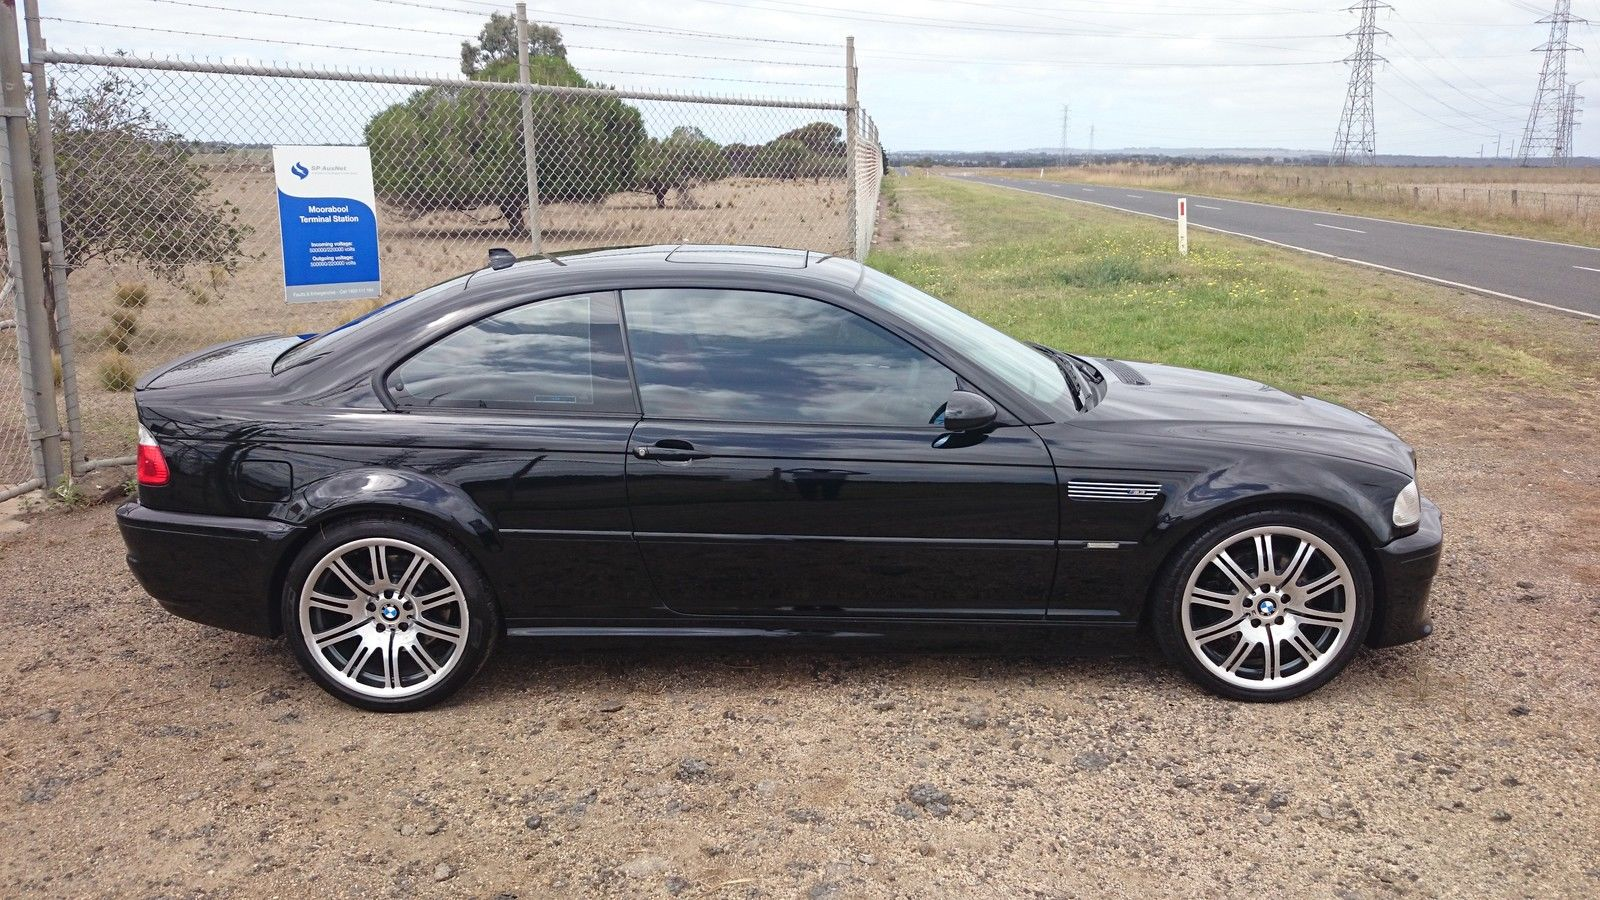 2002 bmw m3 e46 car sales nsw central coast 2668152. Black Bedroom Furniture Sets. Home Design Ideas